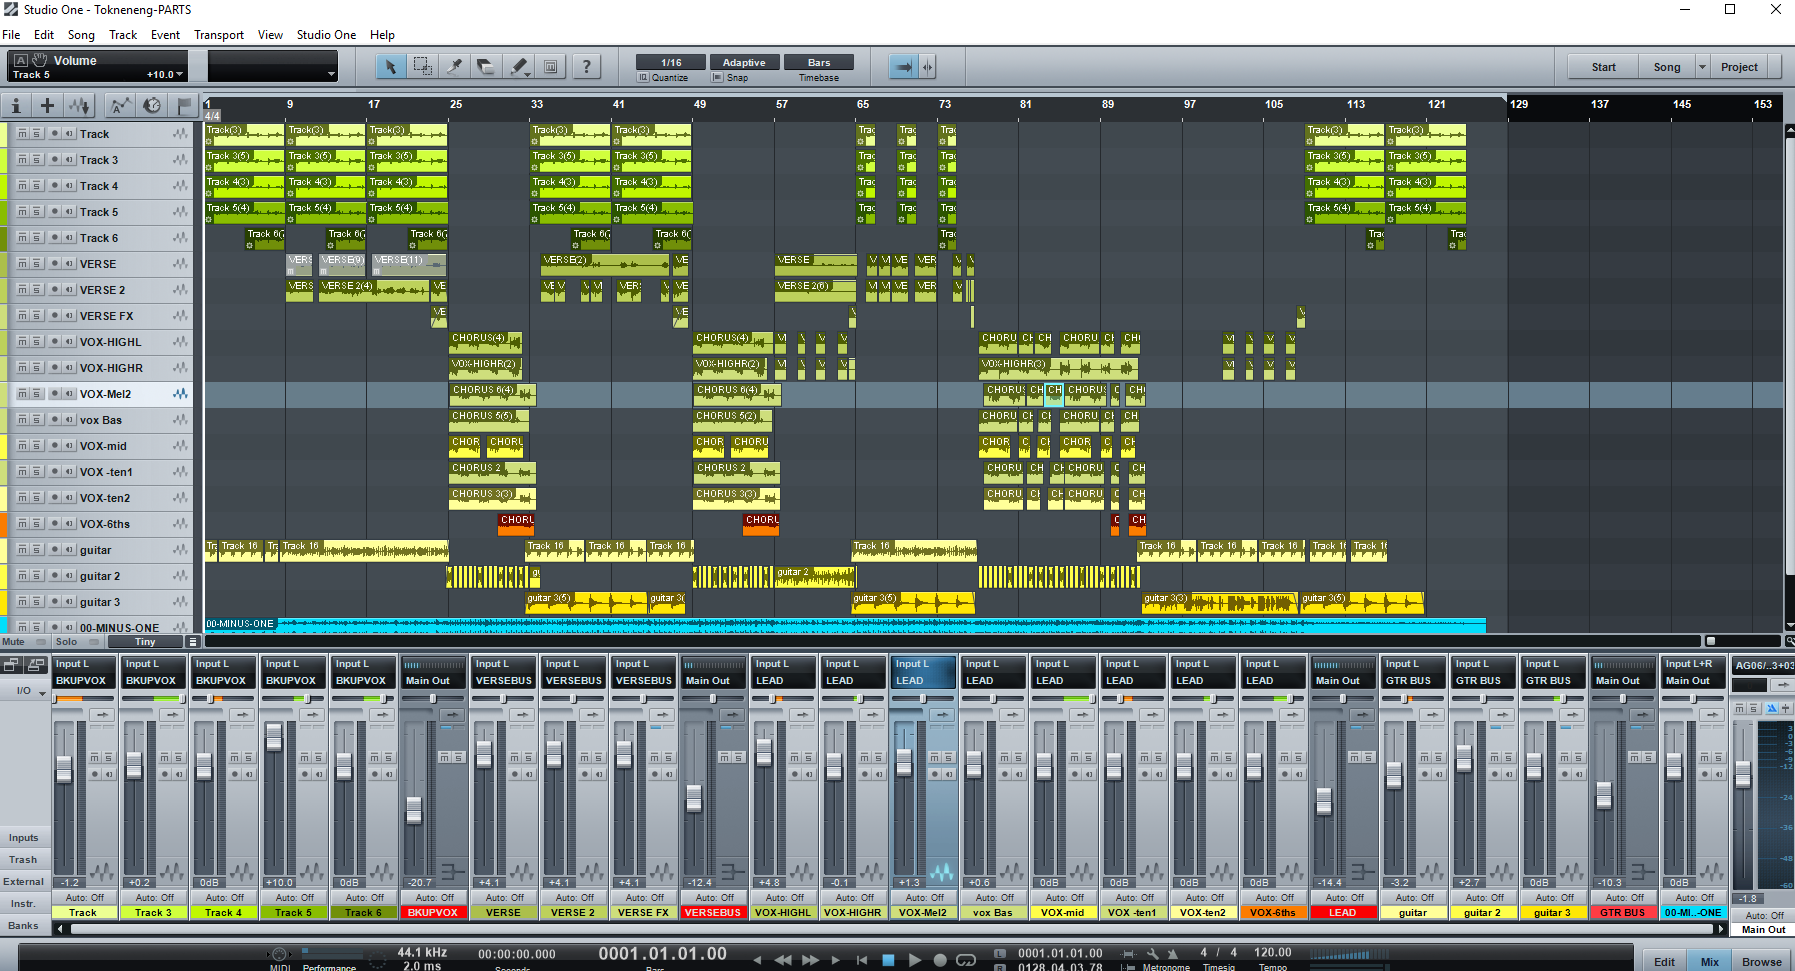 This is what it looked like assembling this song.